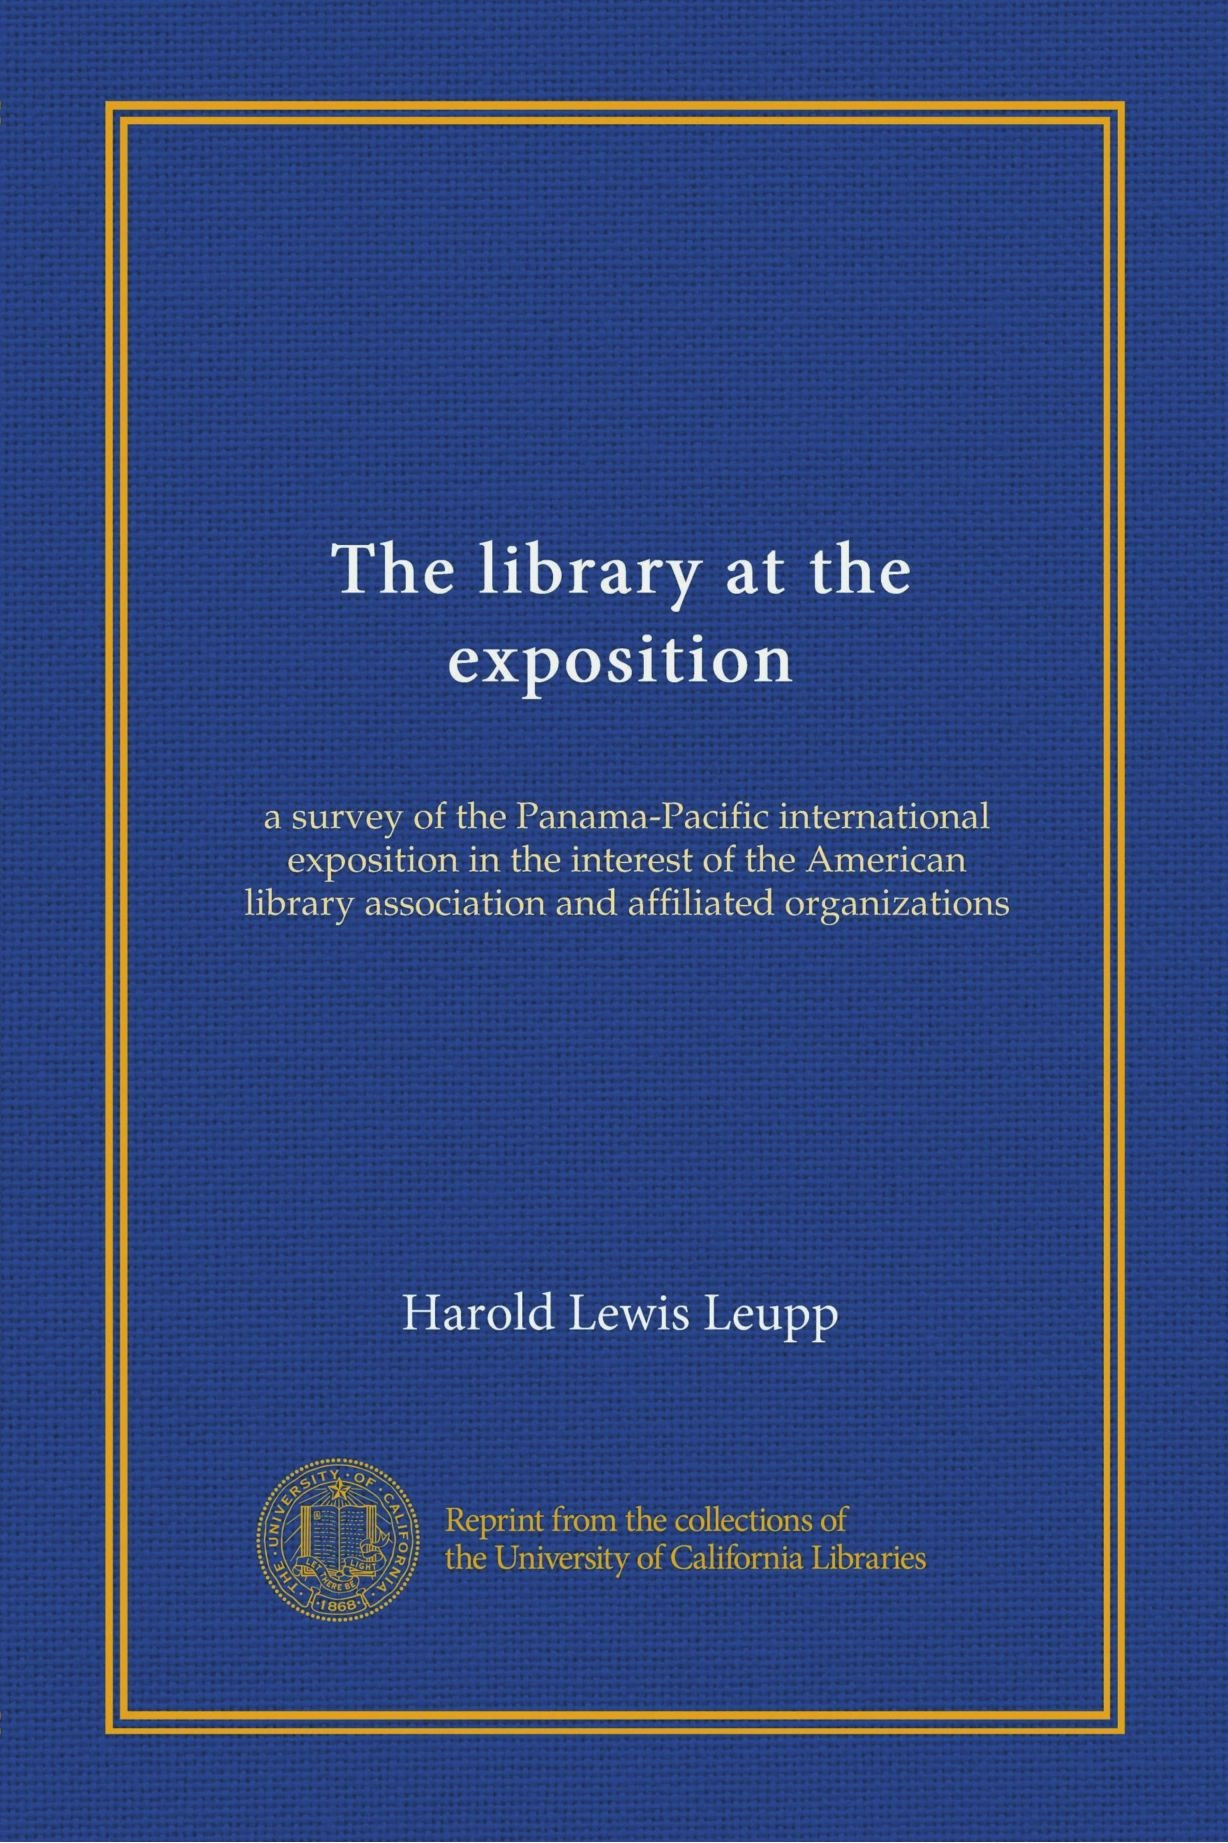 The library at the exposition (Vol-1): a survey of the Panama-Pacific international exposition in the interest of the American library association and affiliated organizations pdf epub